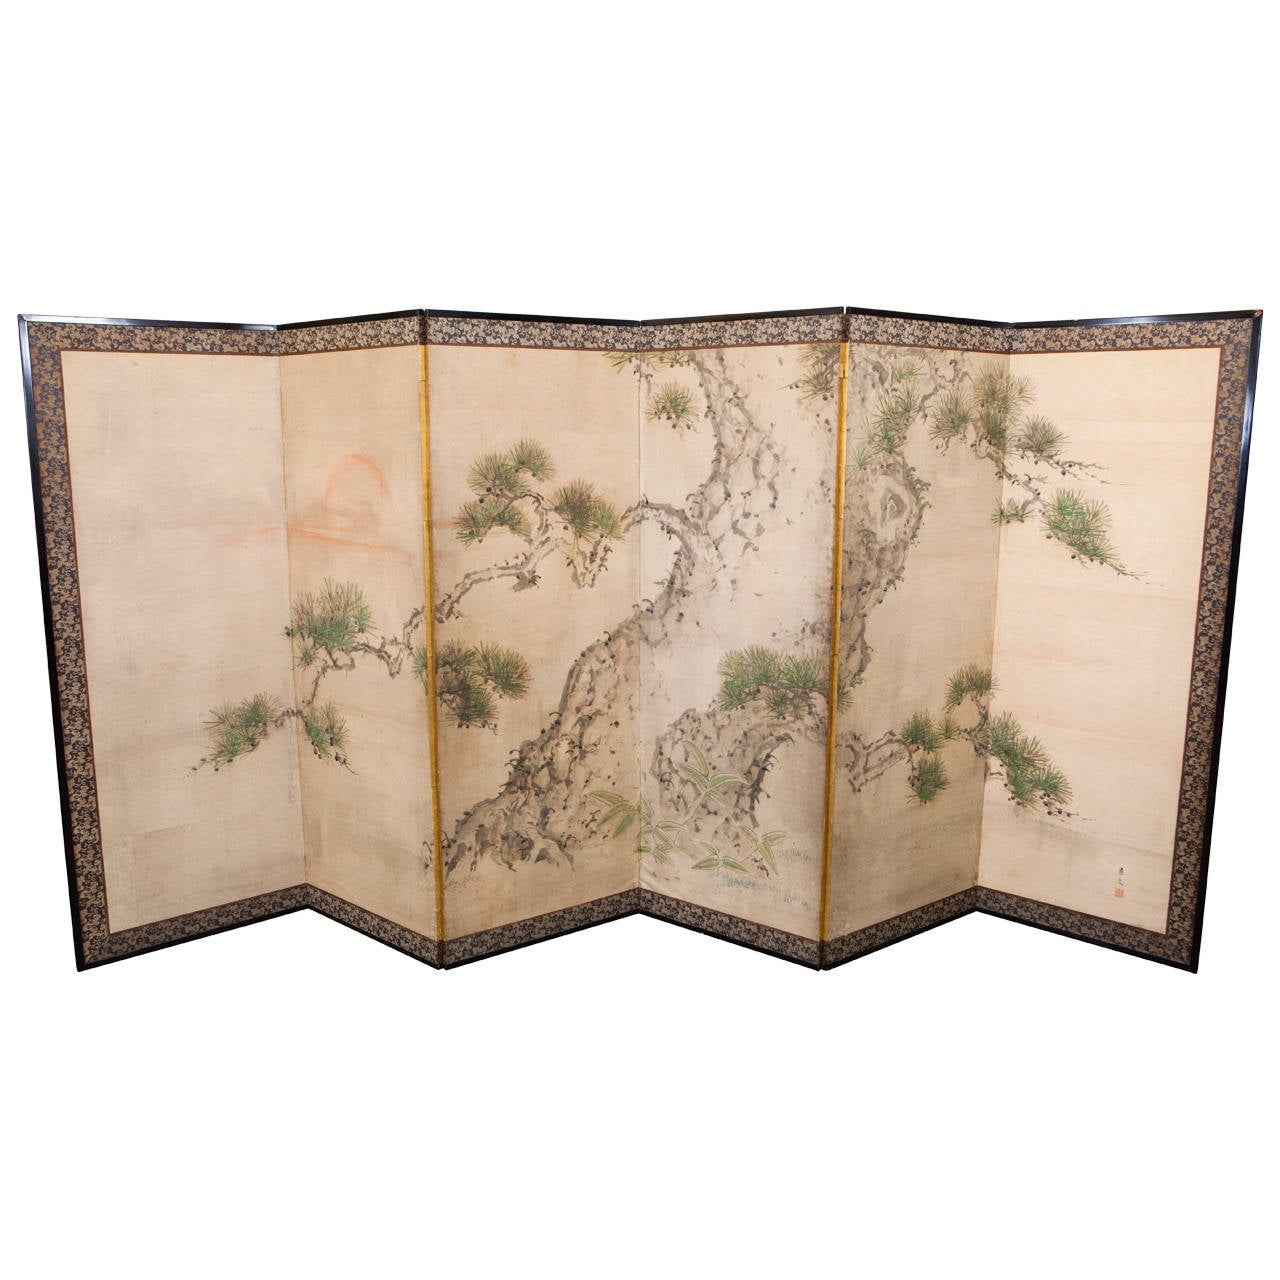 Antique japanese screens for sale - Six Panel Japanese Screen Depicting A Pine Tree Scene 1